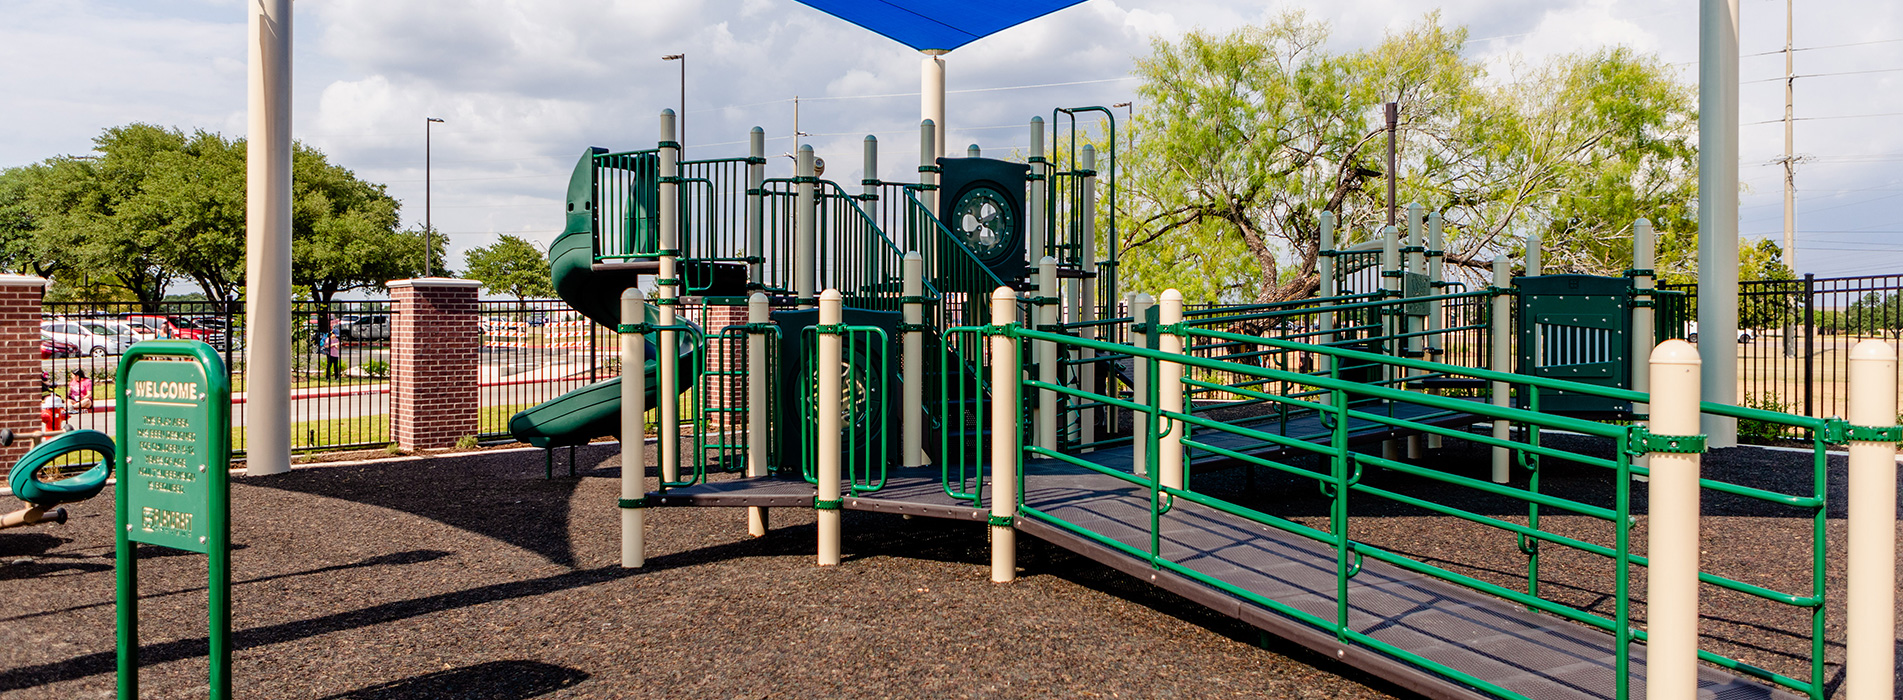 Fun for All Playground - College Station, Texas